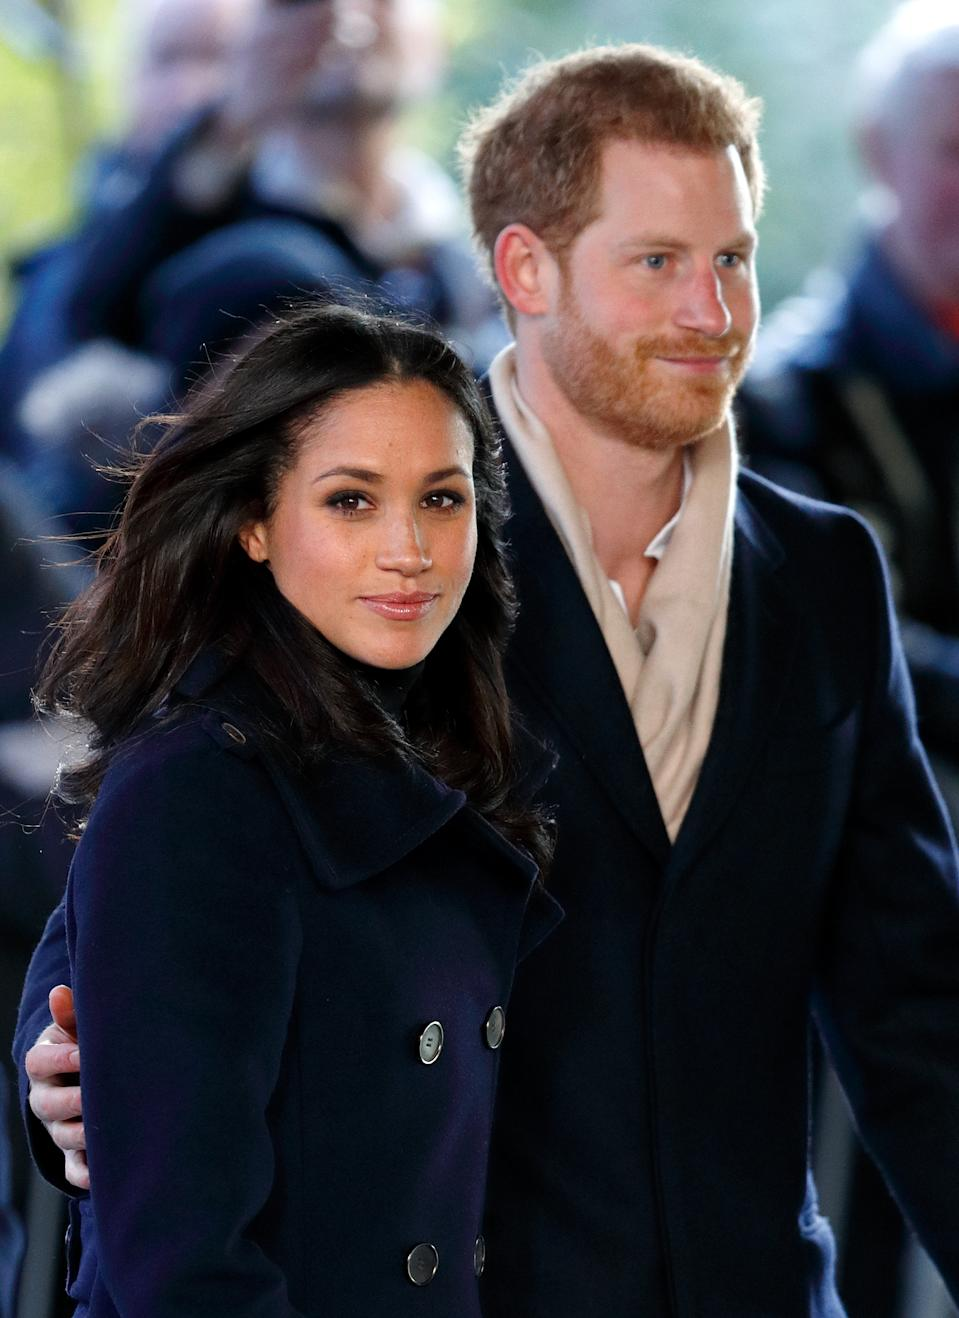 Meghan Markle and Prince Harry attend a Terrence Higgins Trust World AIDS Day charity fair at Nottingham Contemporary on December 1, 2017 in Nottingham, England. Prince Harry and Meghan Markle announced their engagement on Monday 27th November 2017 and will marry at St George's Chapel, Windsor in May 2018.